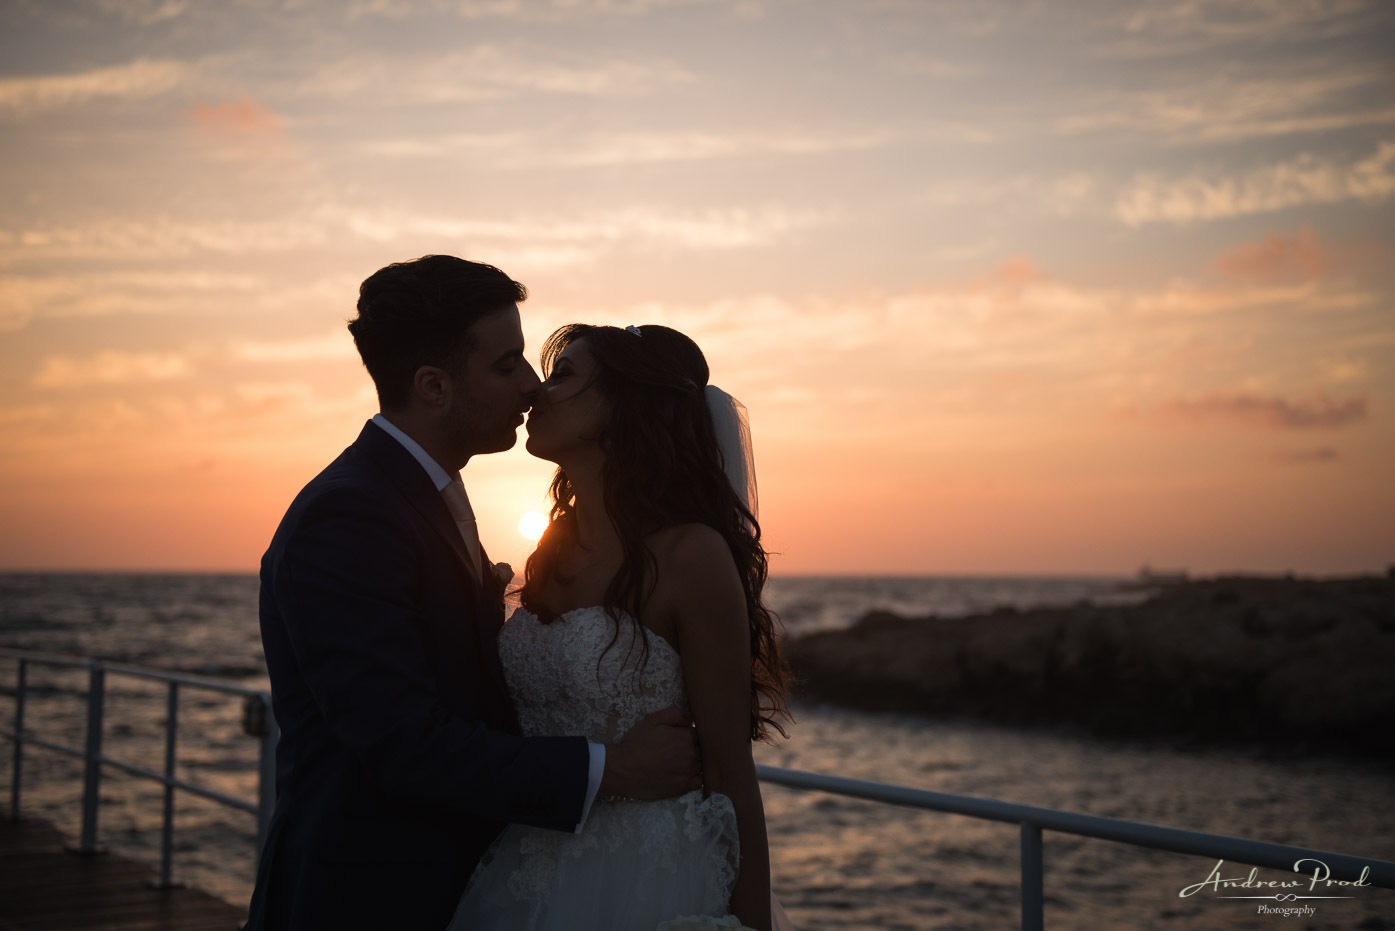 elysium paphos weddings sunset